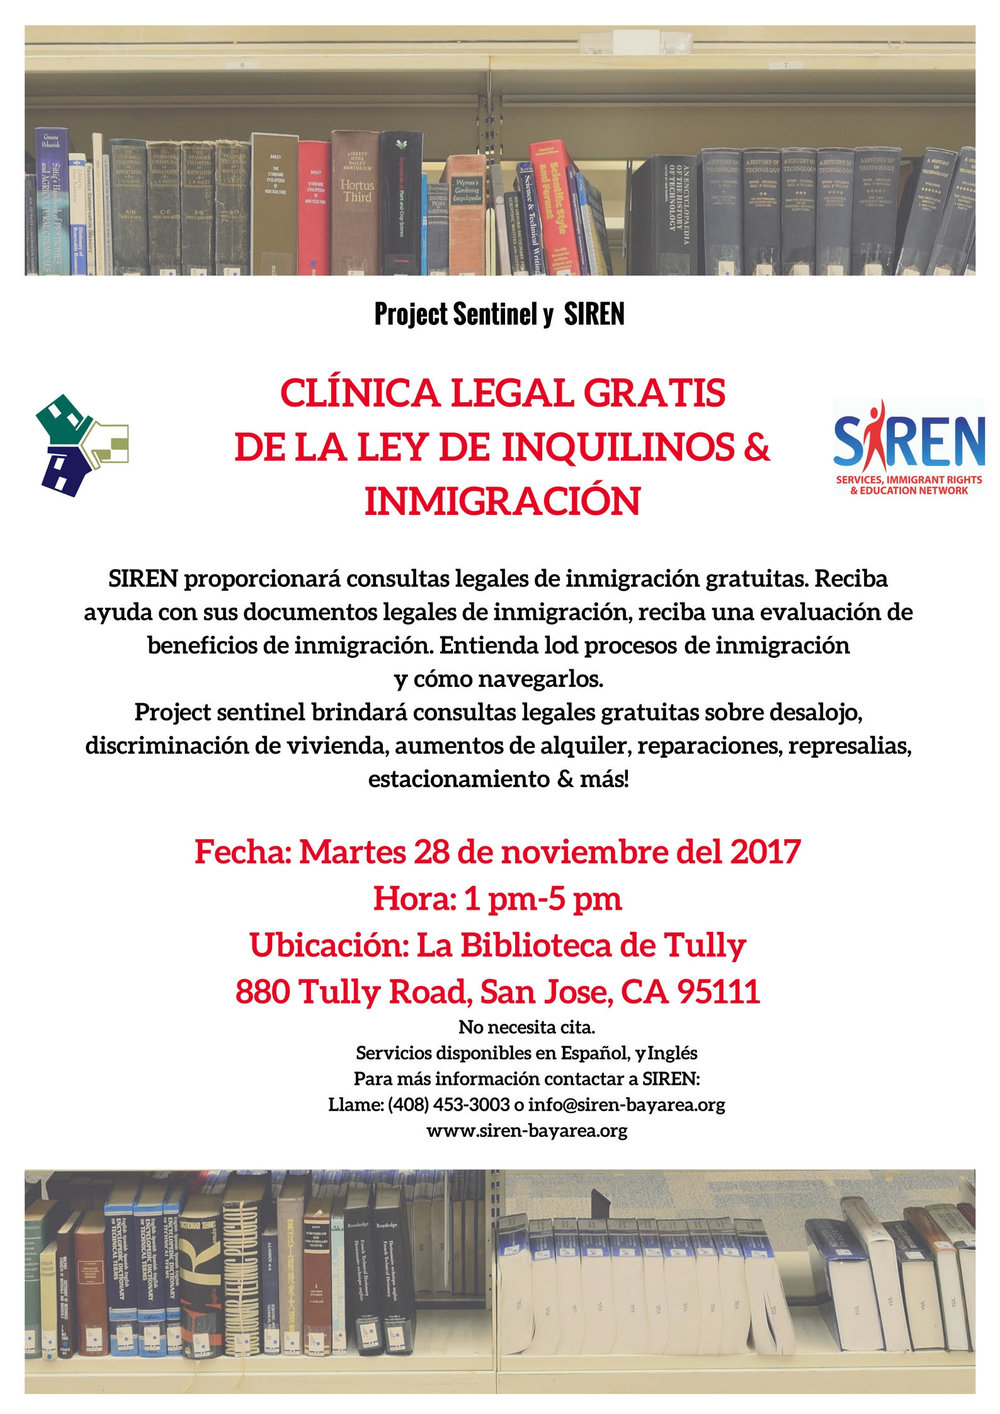 SIREN-clinica-legal-gratis-de-la-ley-inquilinos-immigracion.jpg